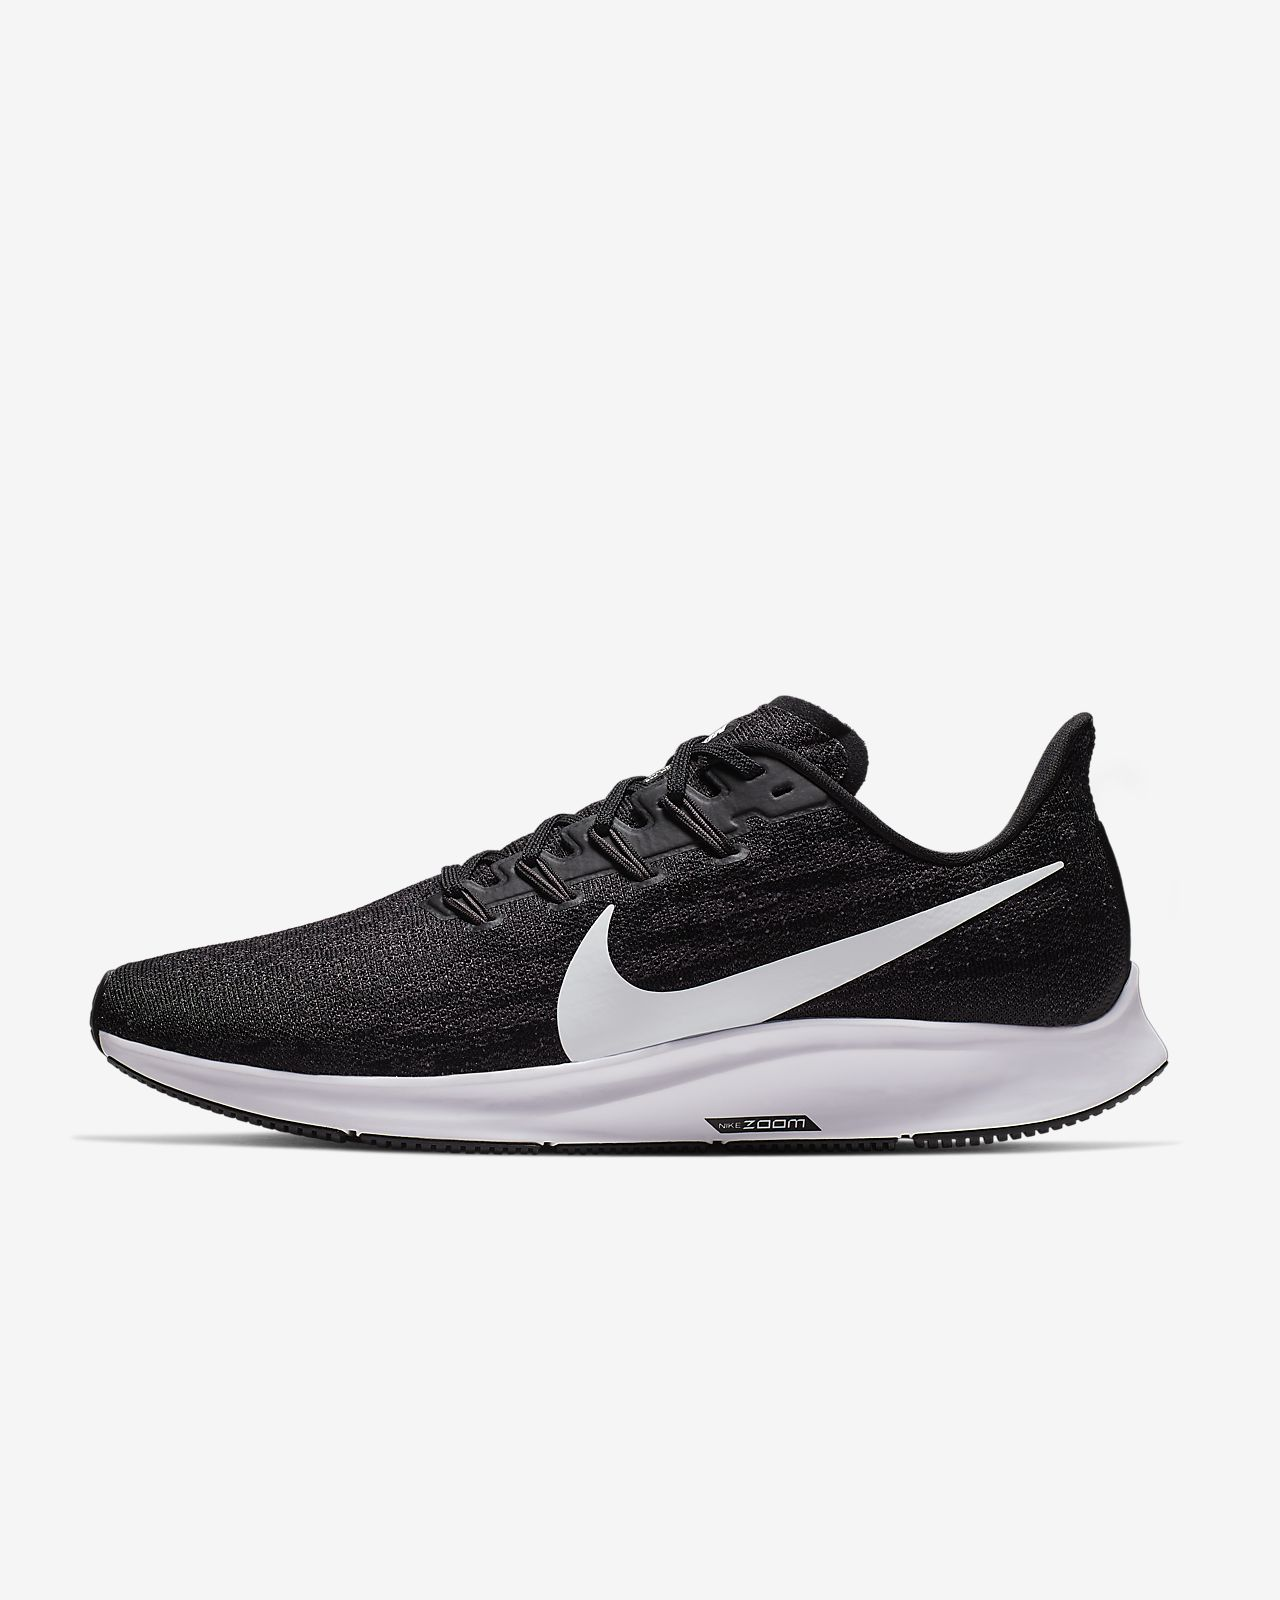 Image result for Nike Zoom